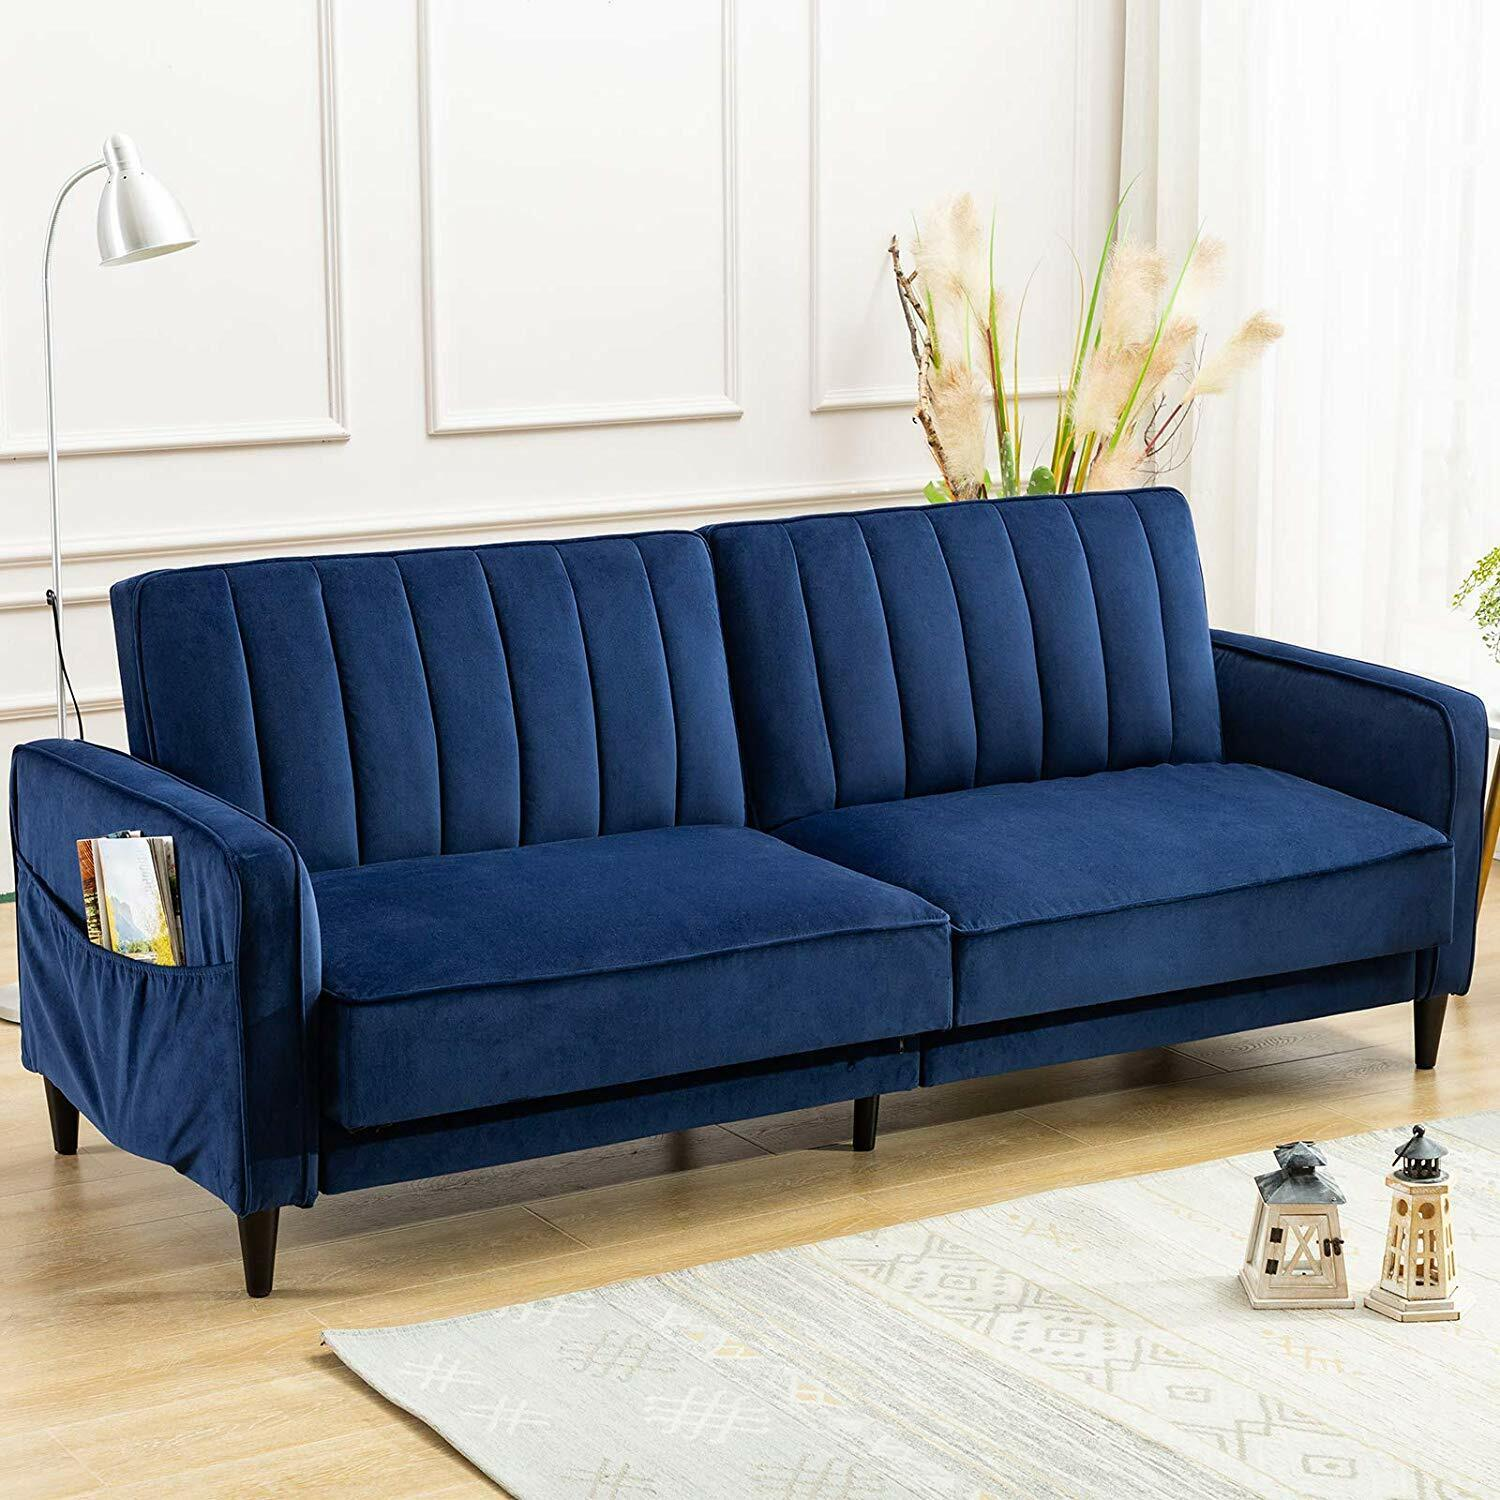 Tufted Futon Sofa Bed Convertible